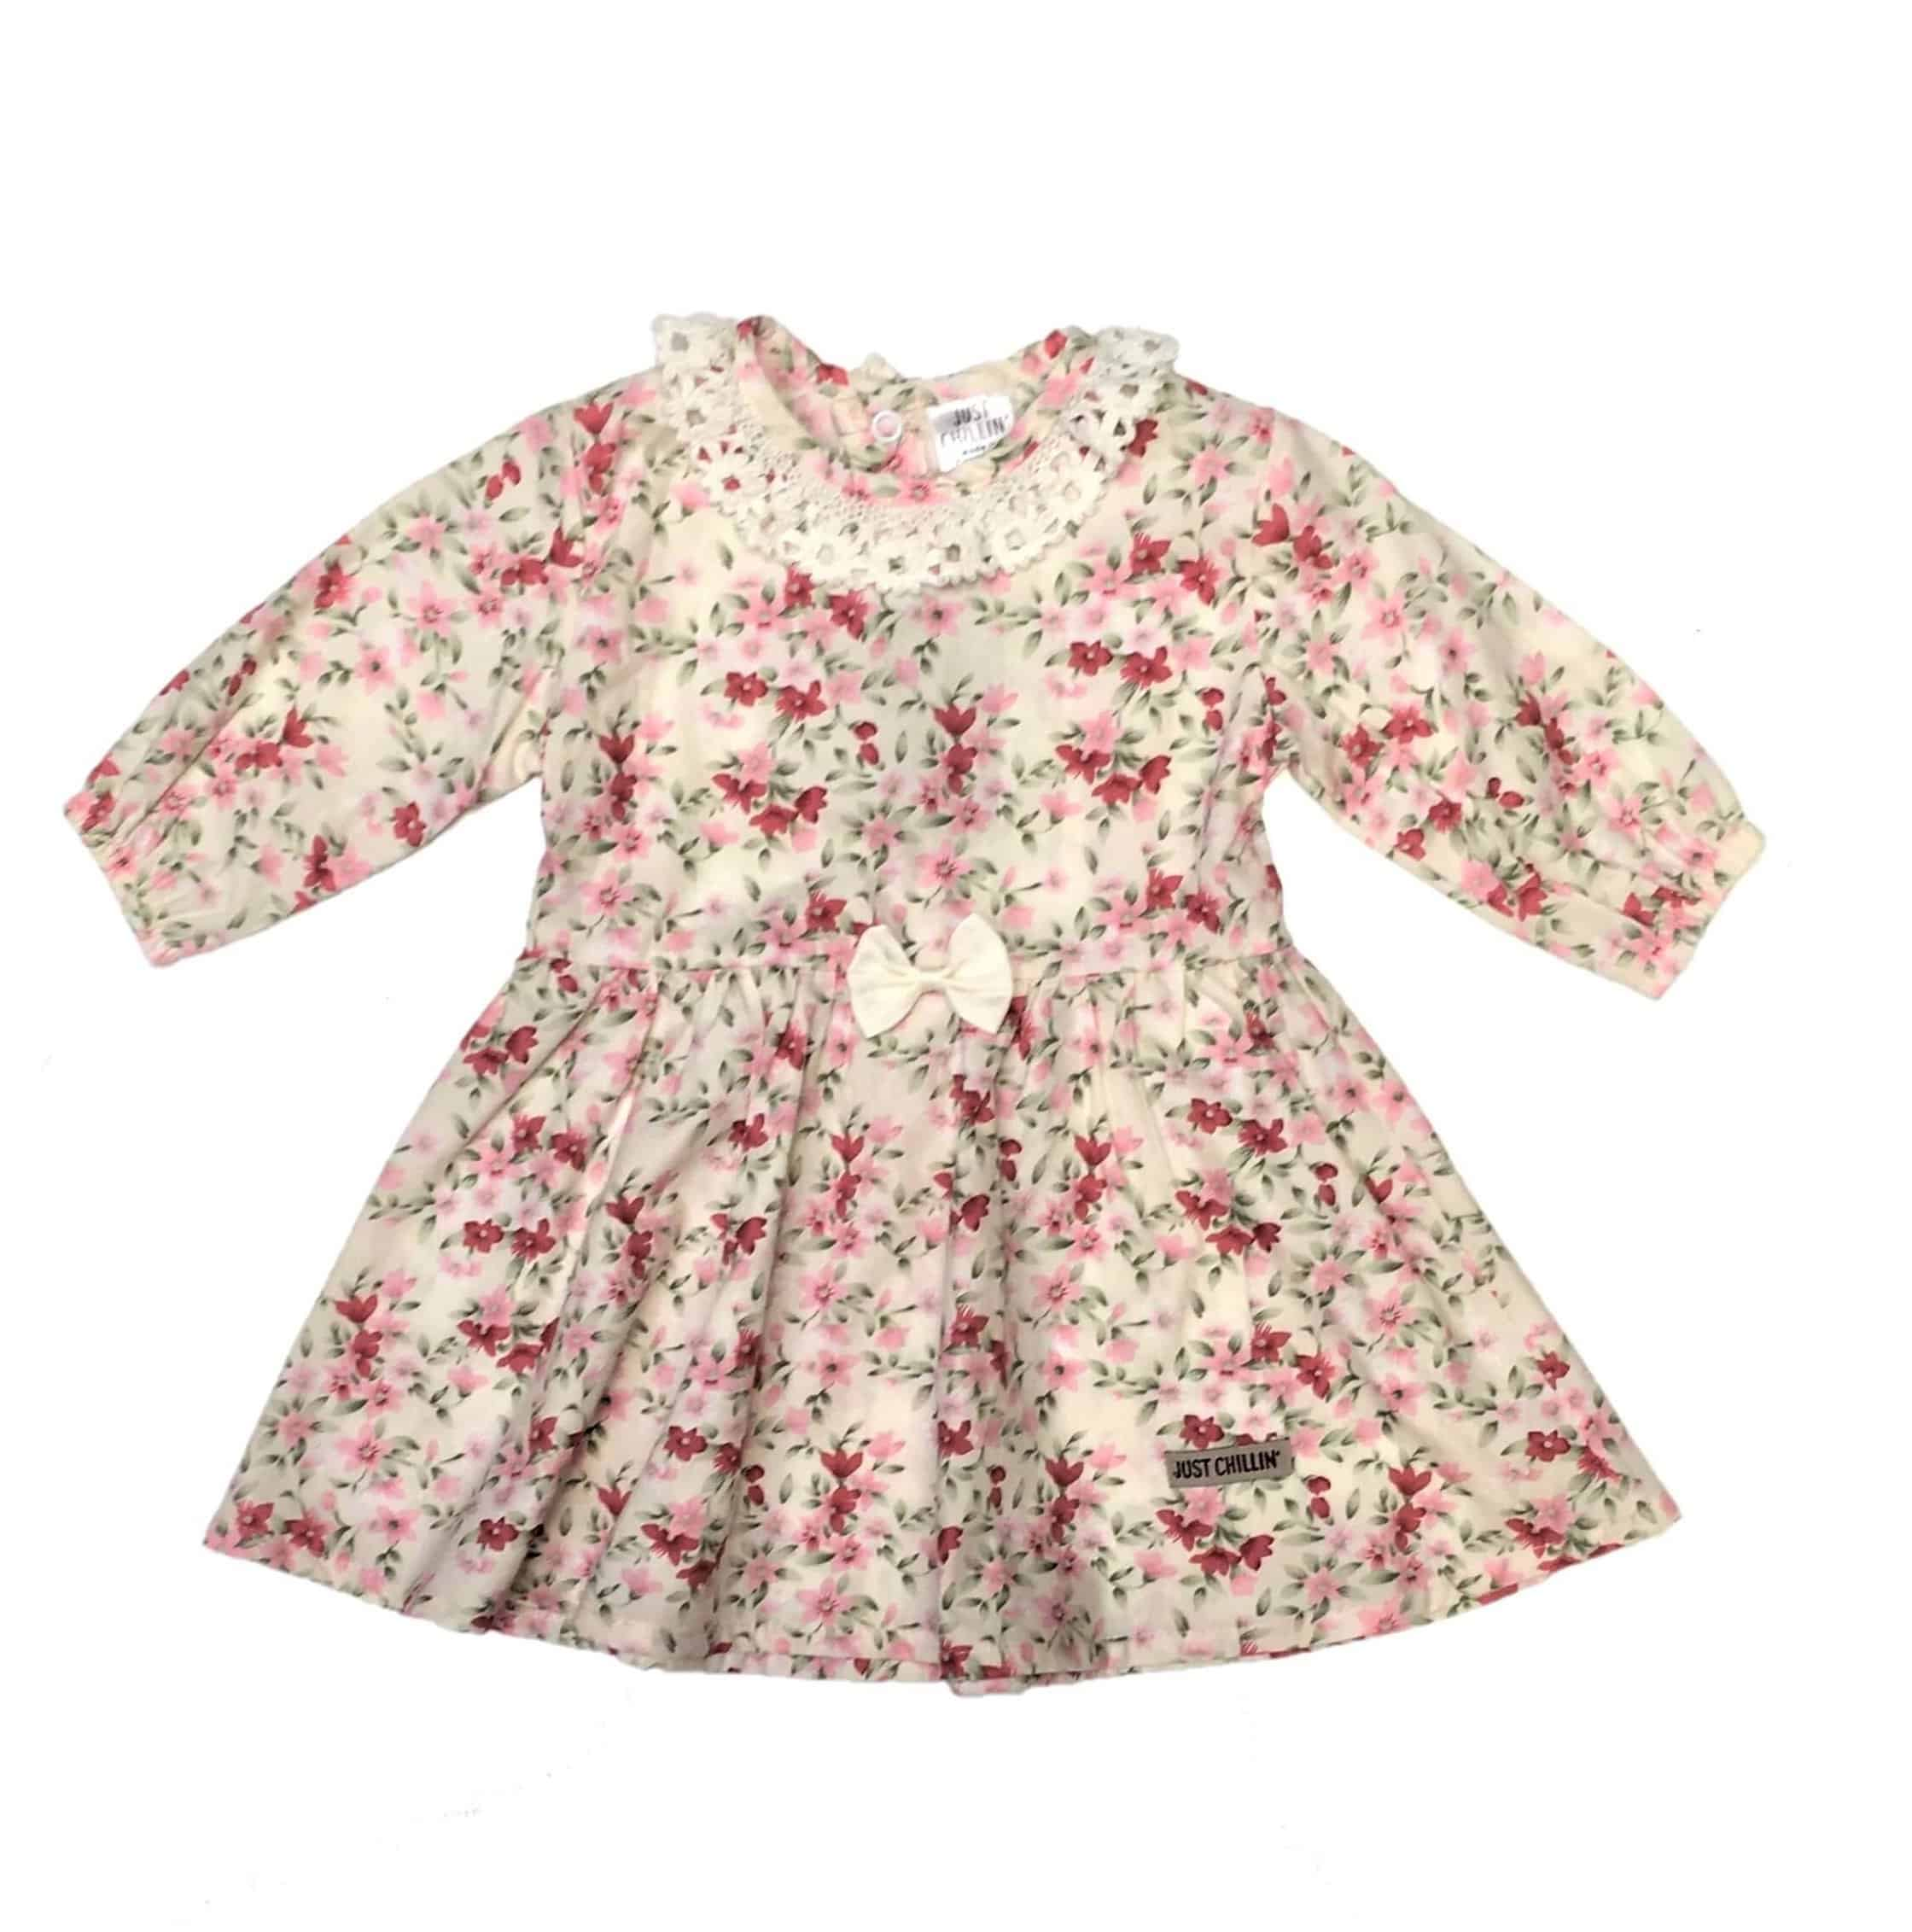 c75fbcc8c3798 Baby Girls Dress - Yellow Floral